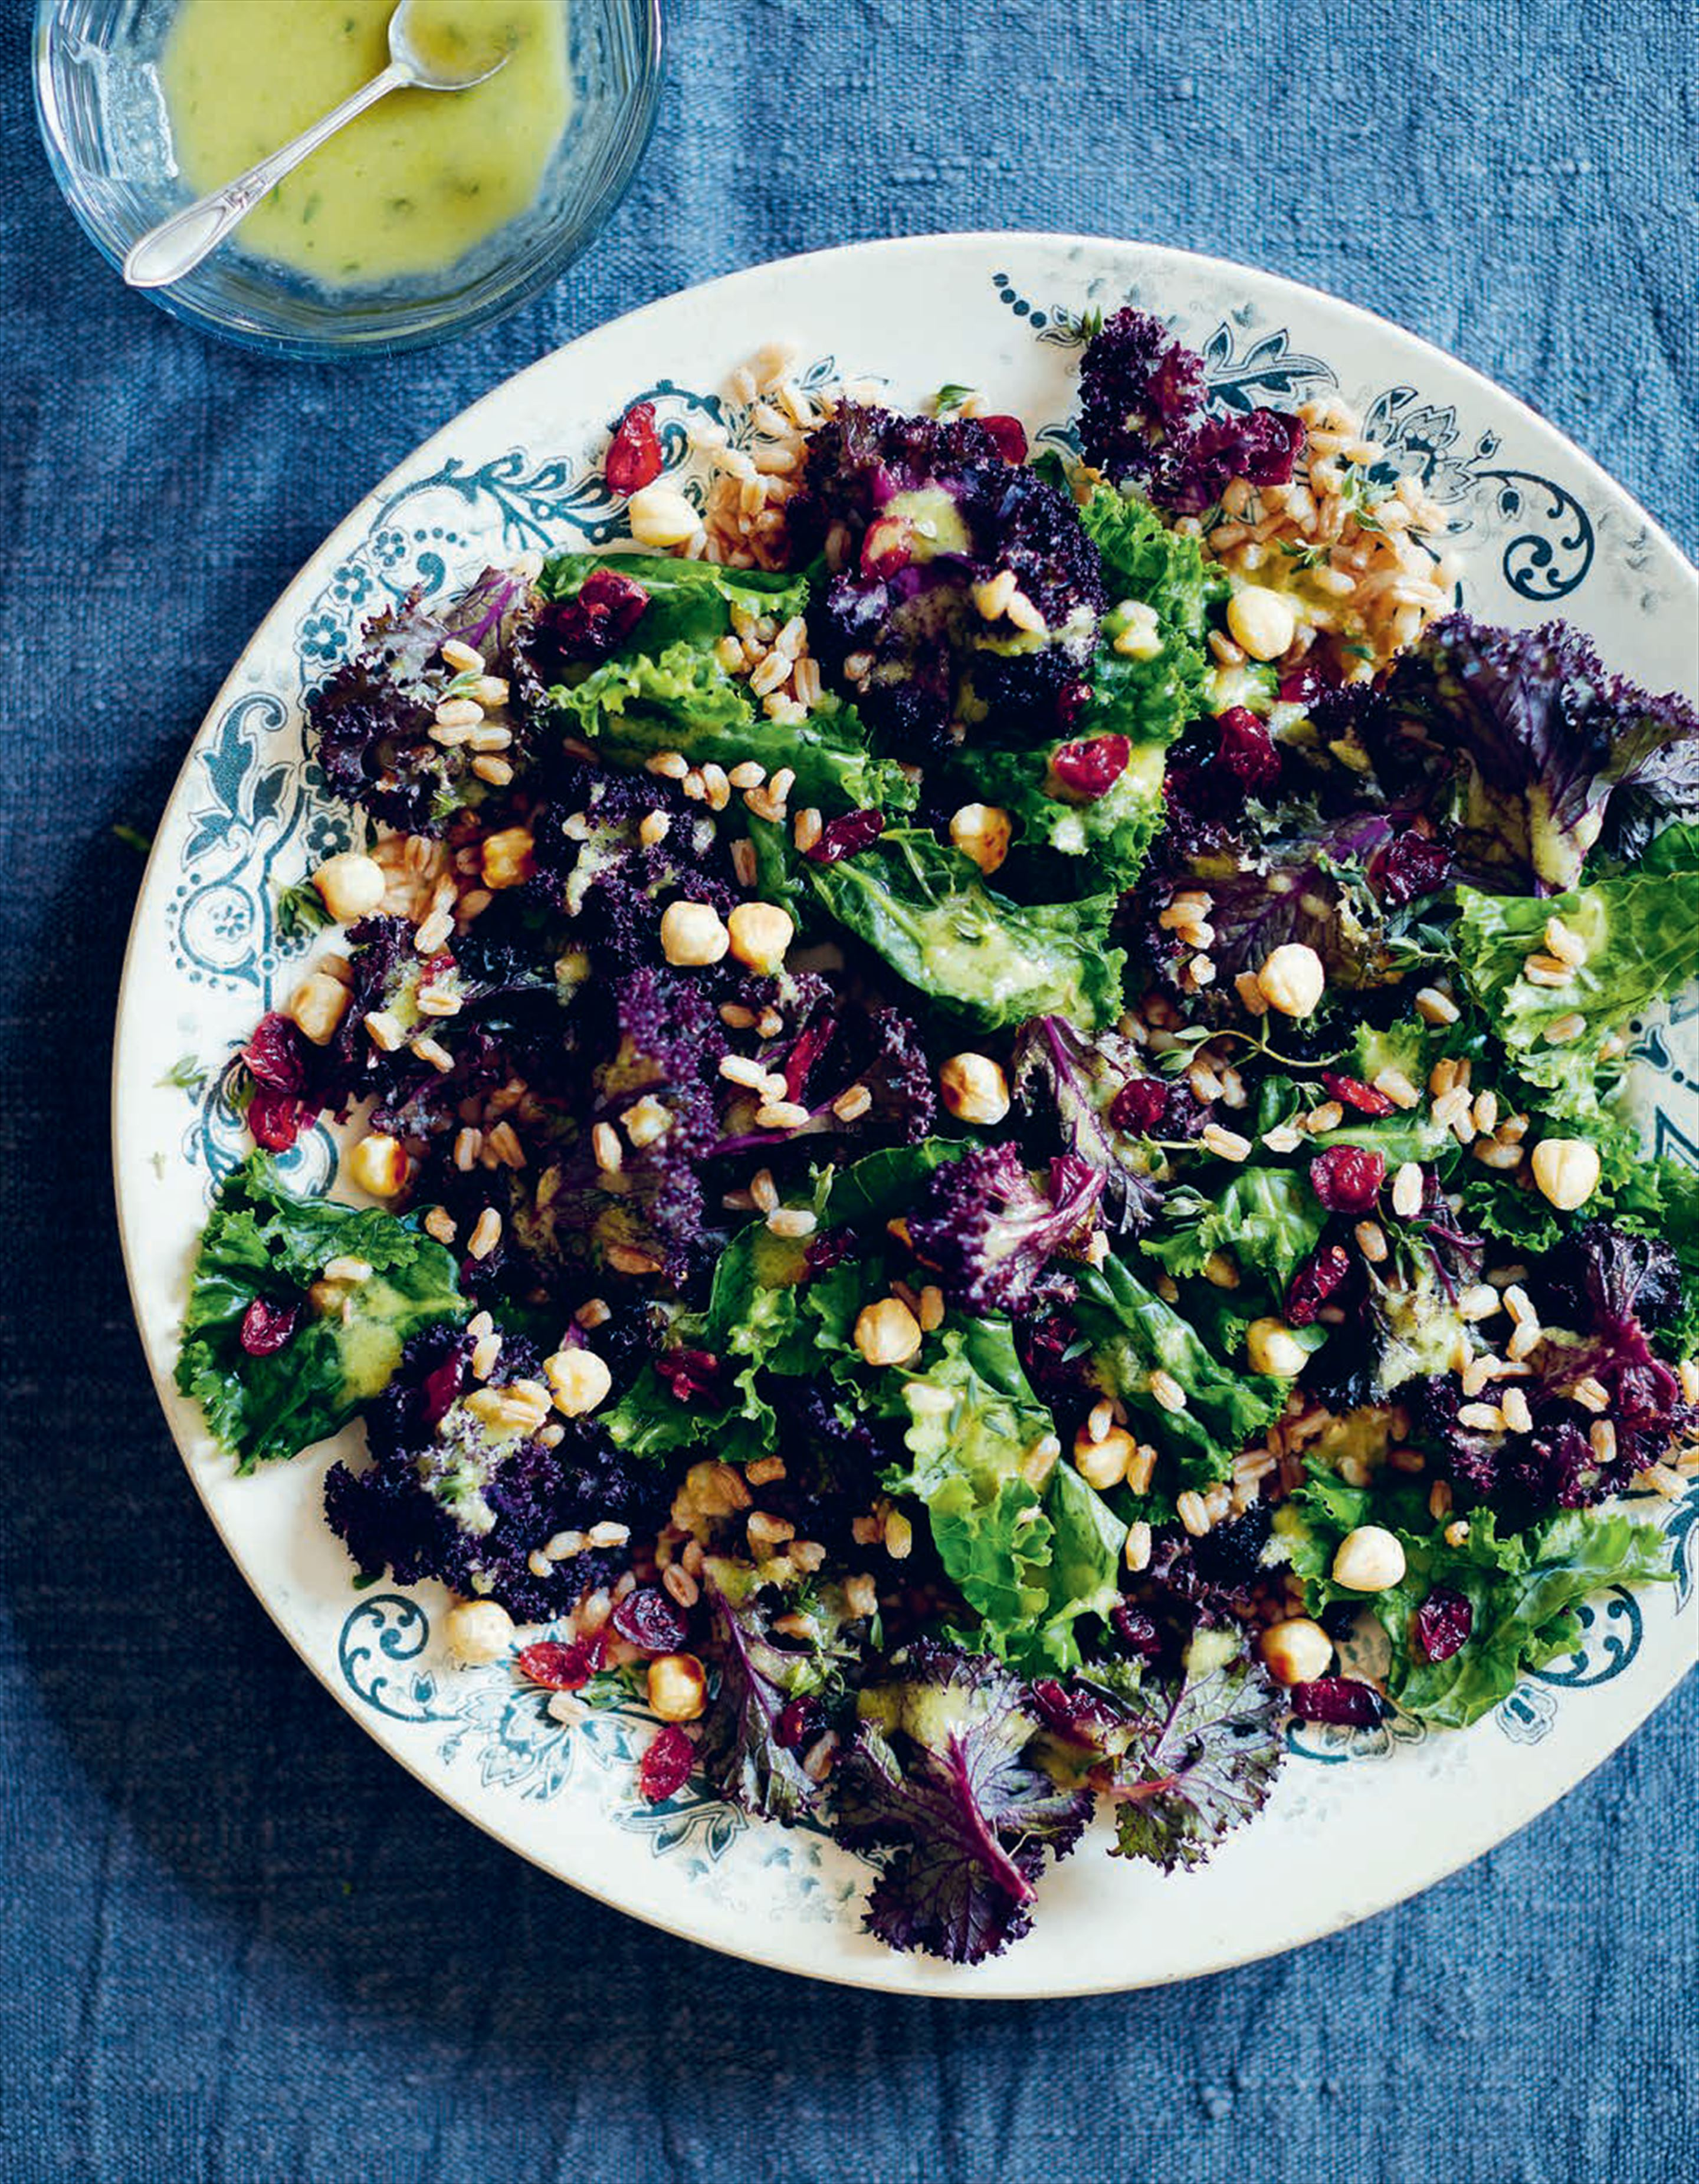 An autumn salad with massaged kale, spelt, dried cranberries, lime & hazelnuts